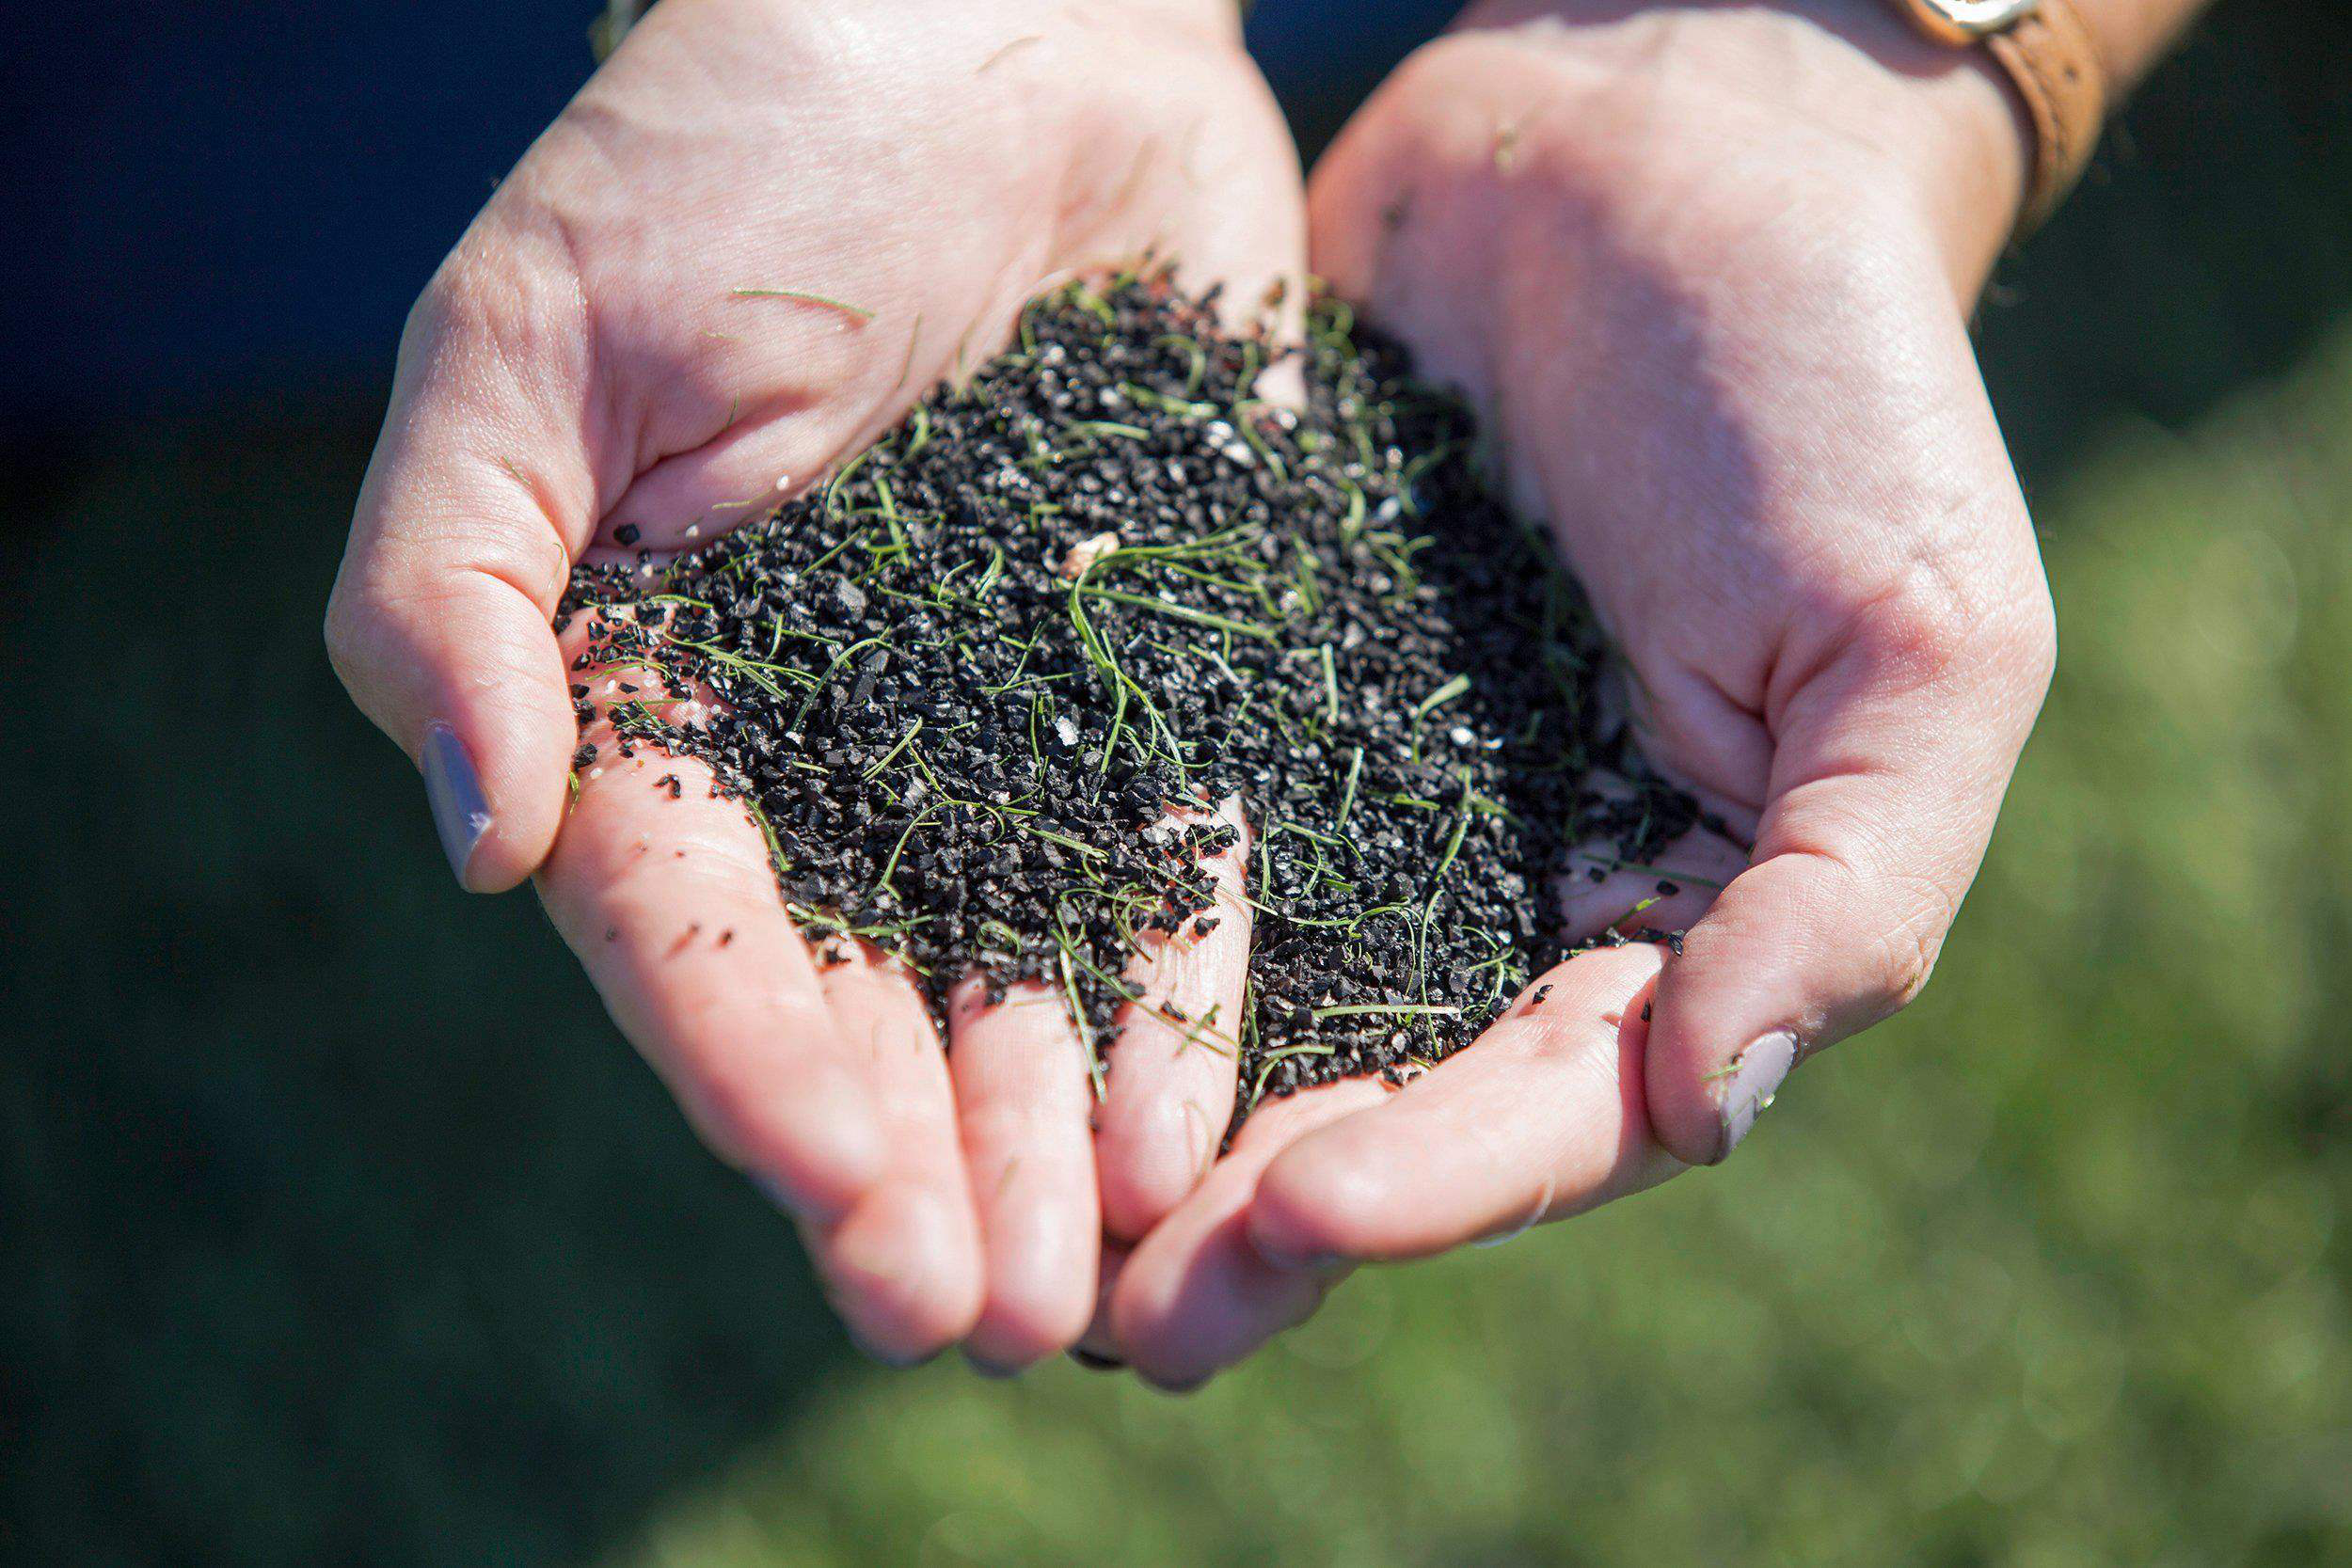 Does Artificial Turf Cause Cancer?